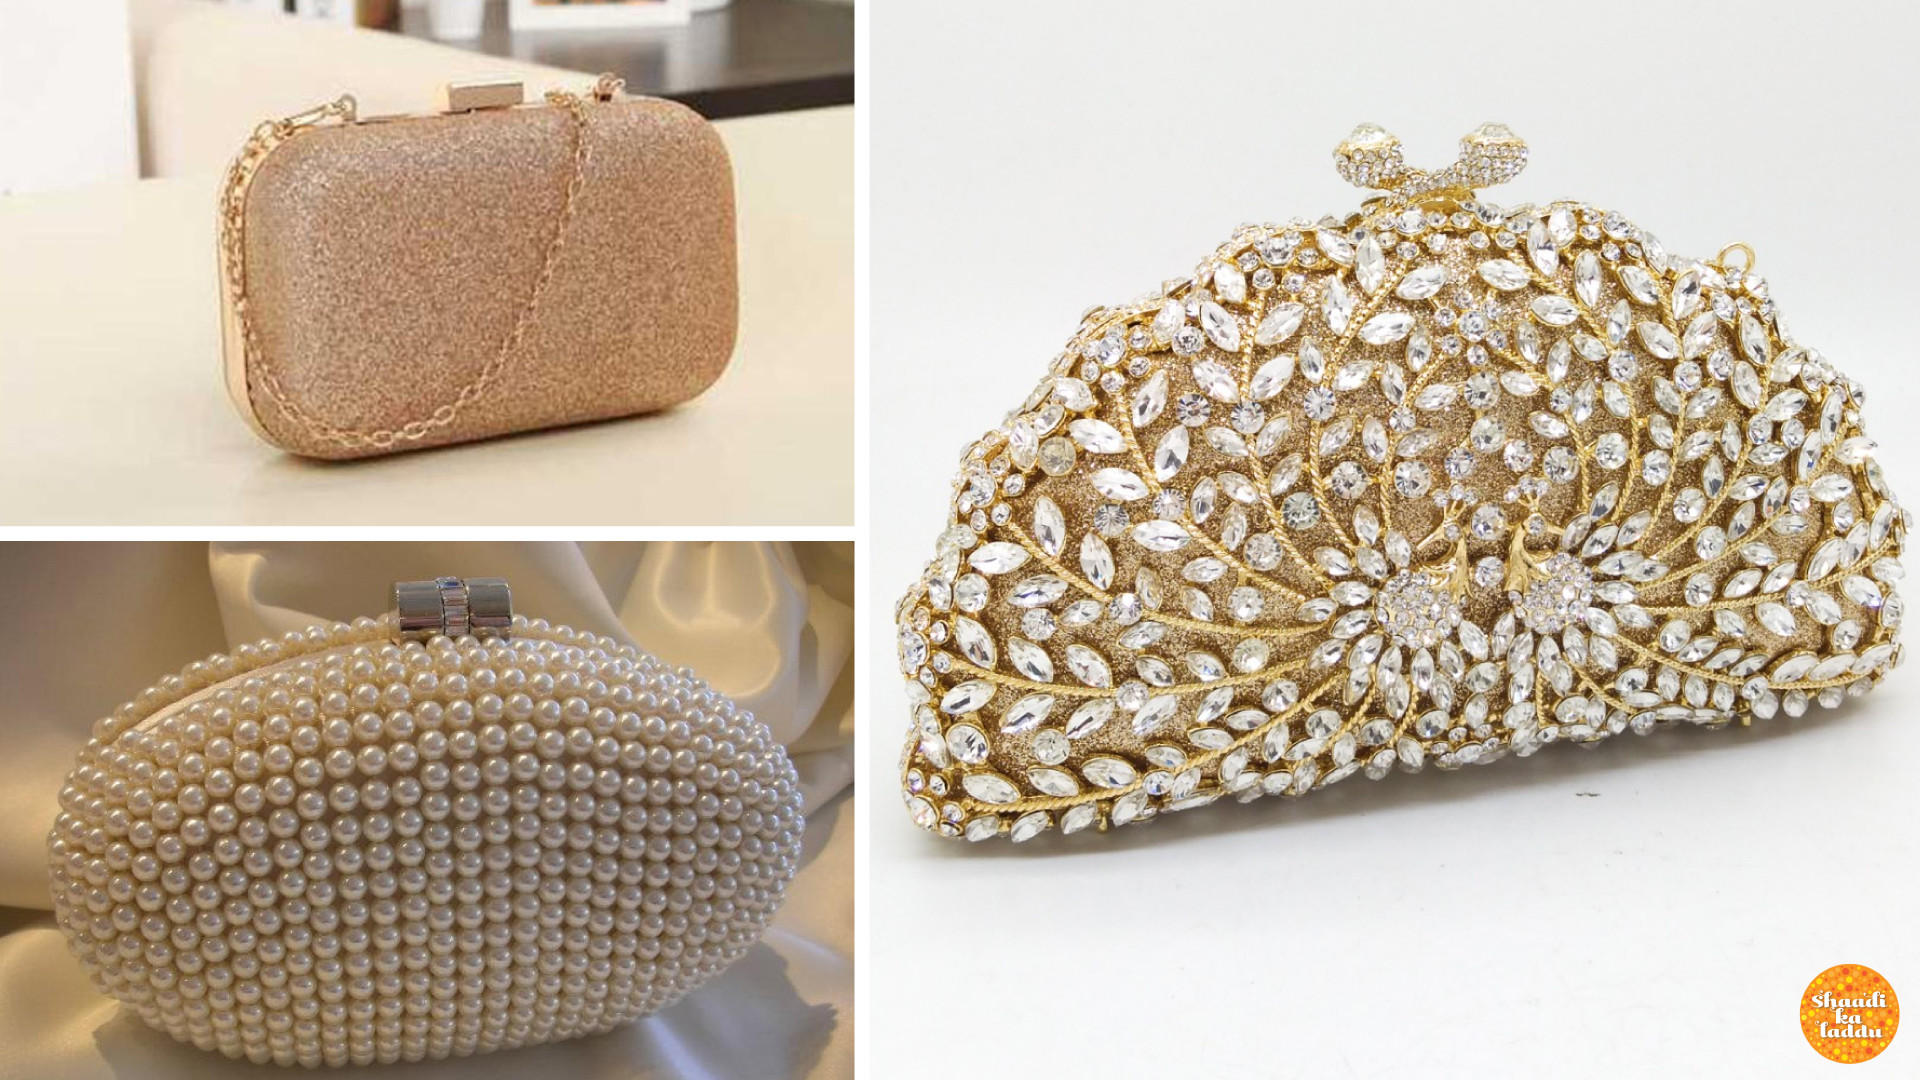 Classy, pearl studded, gem studded party clutches